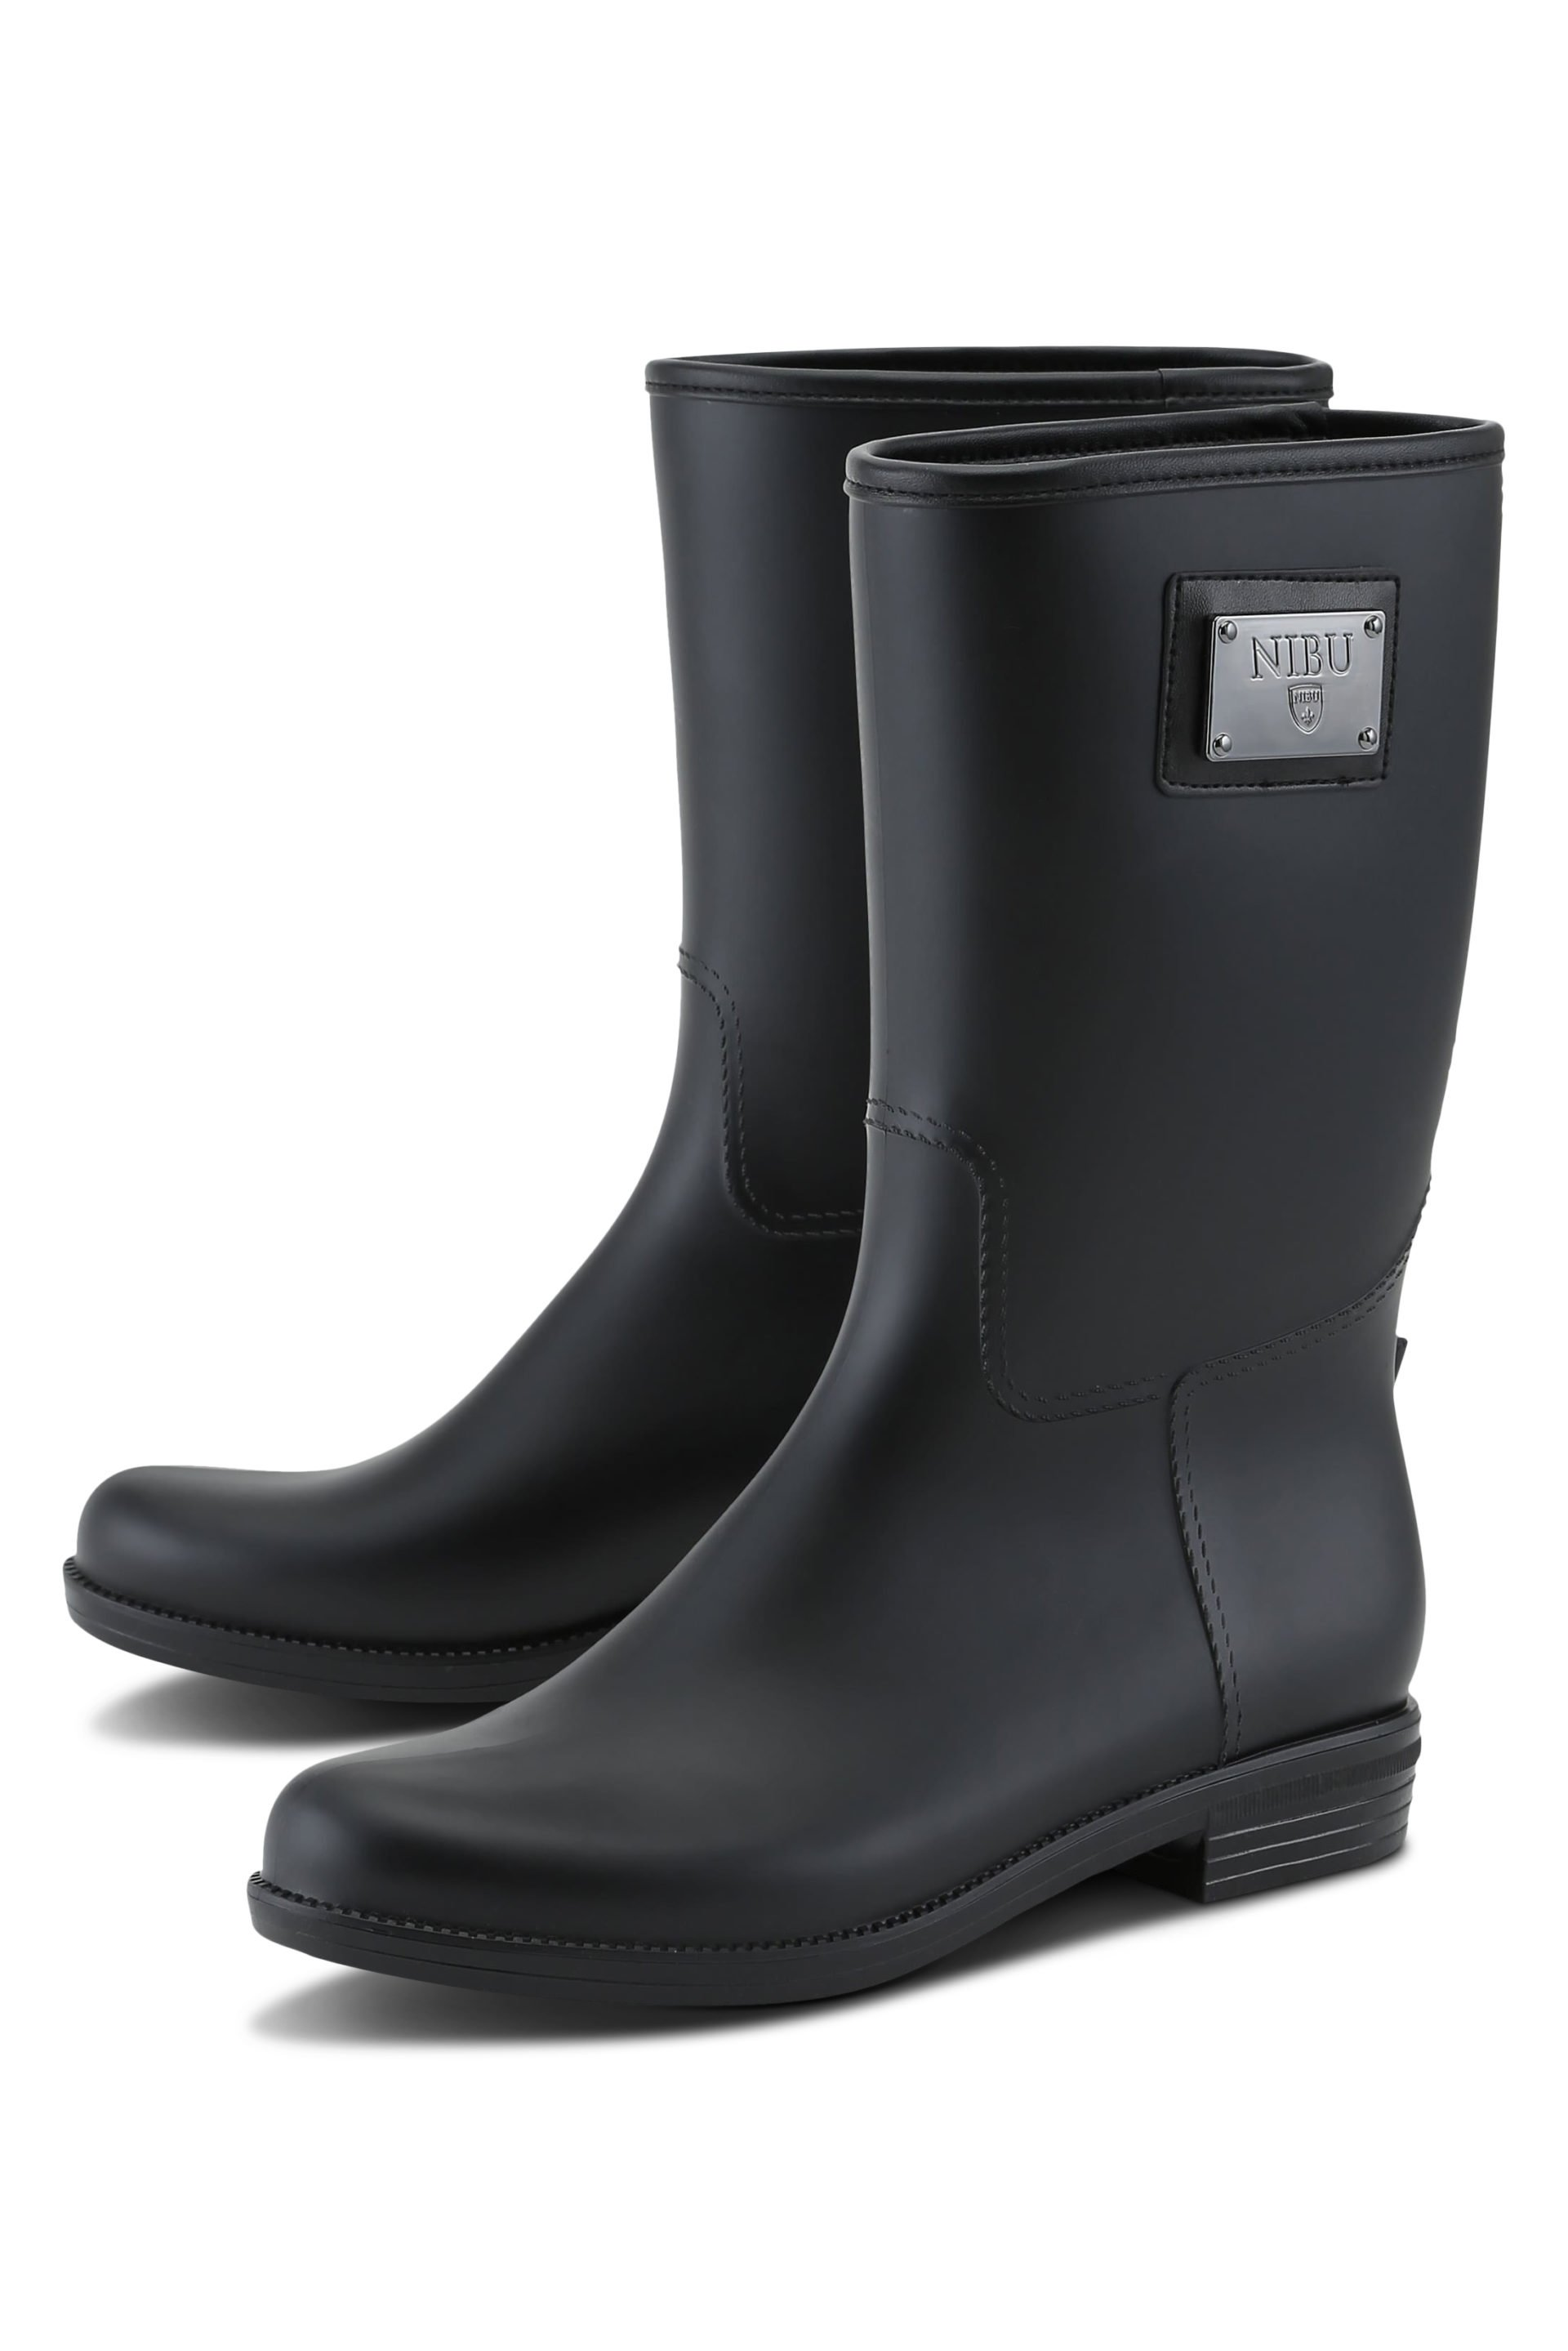 Short rainboots in matte black